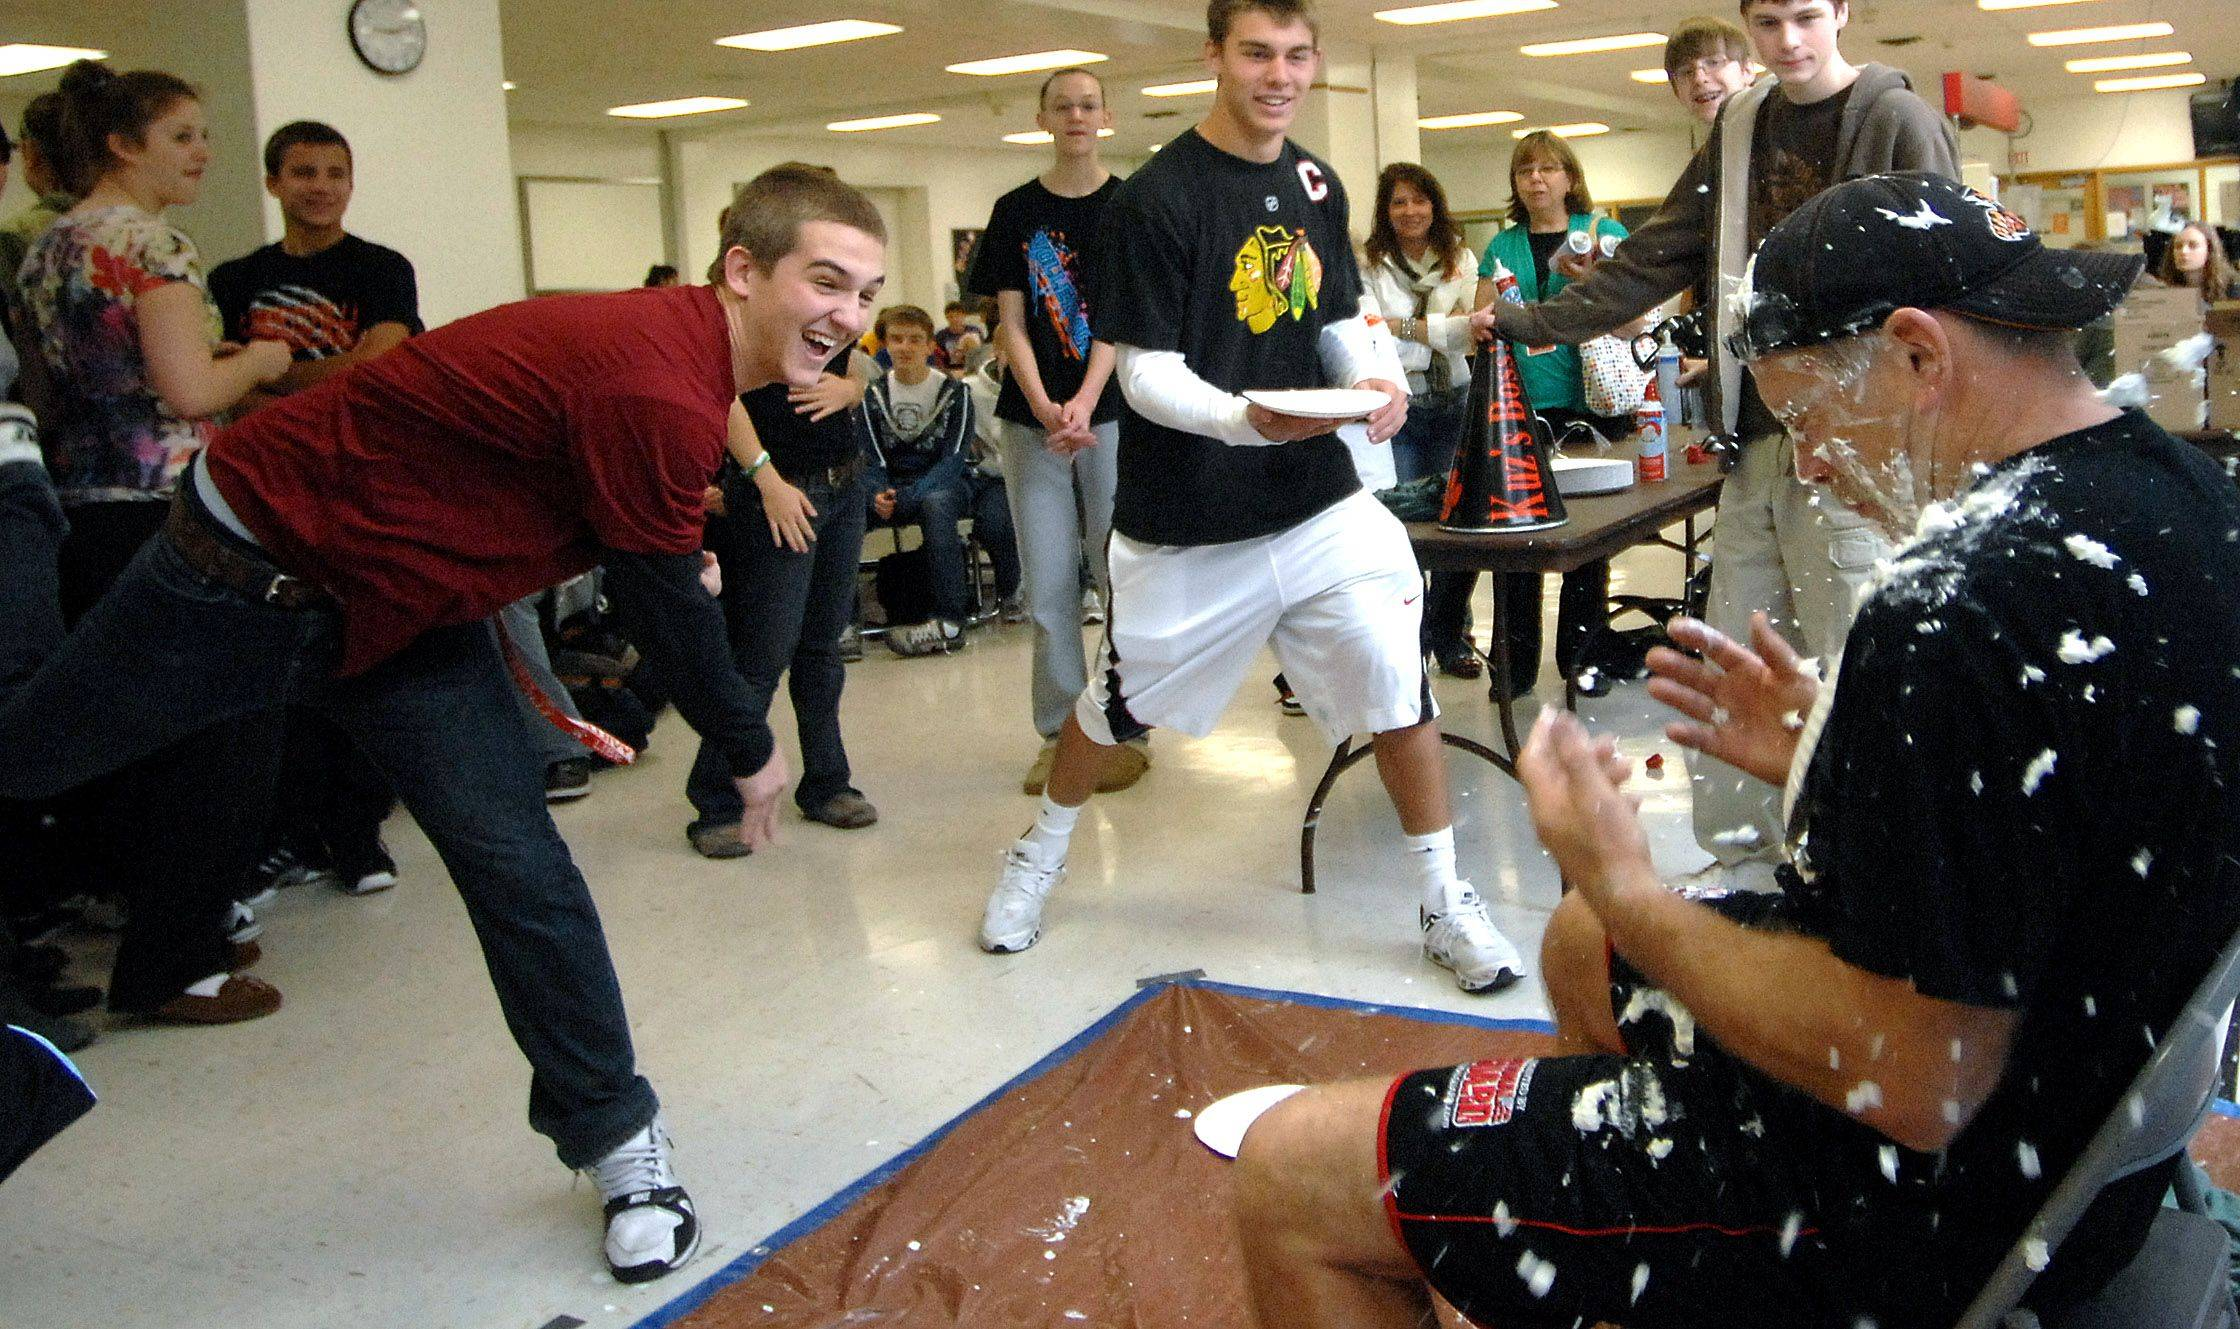 Libertyville High School senior Jake Duguid enjoys throwing a pie at head football coach Randy Kuceyeski Wednesday. Participants donated money to throw a pie, raising money for the schools Project WISH which provides Christmas presents to 183 families.